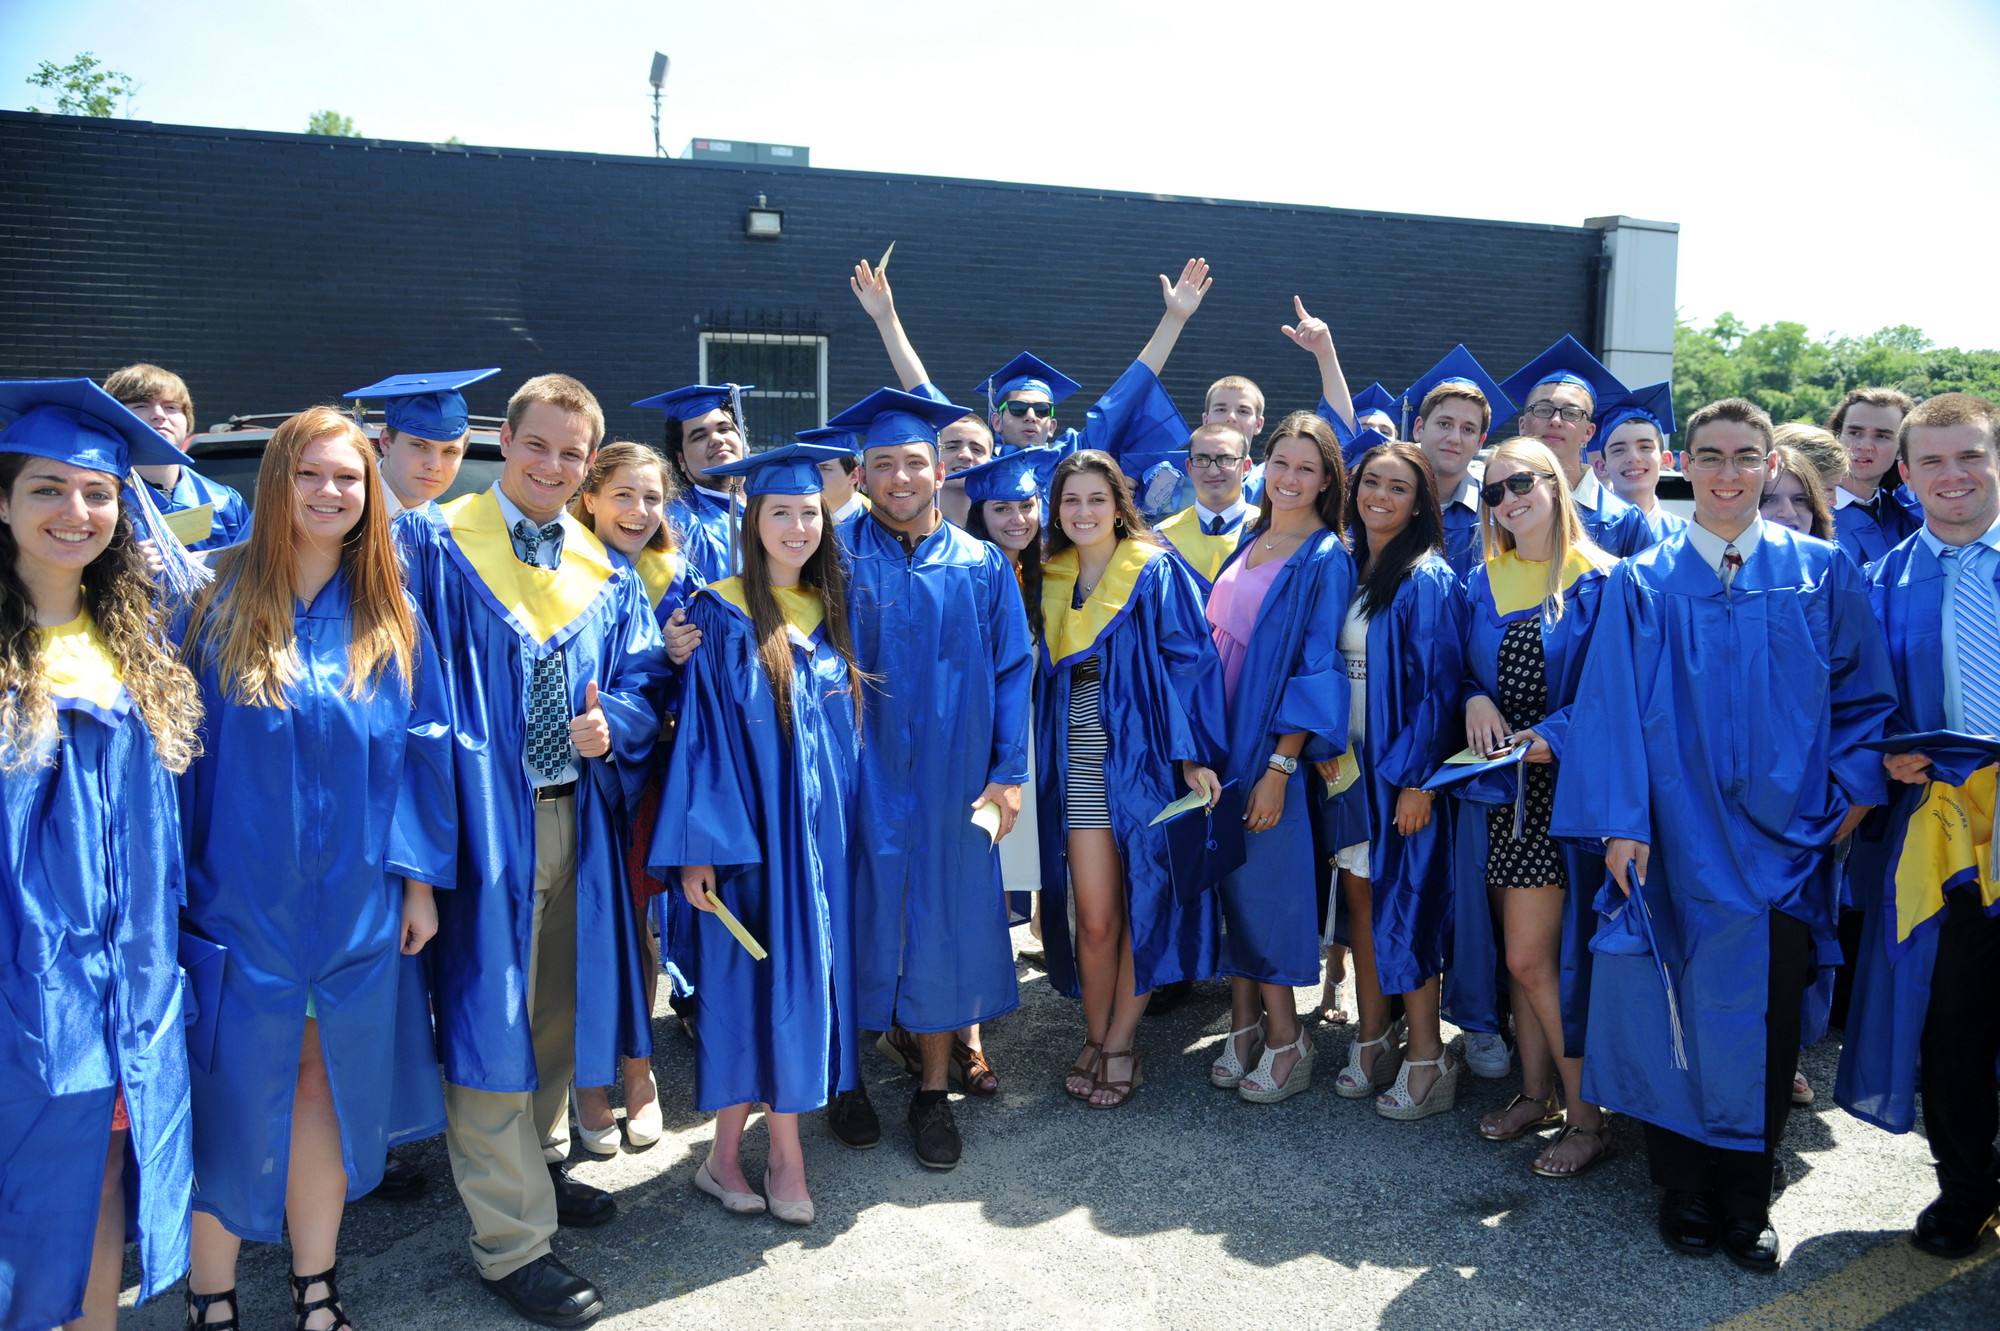 The seniors rejoiced before the ceremony.